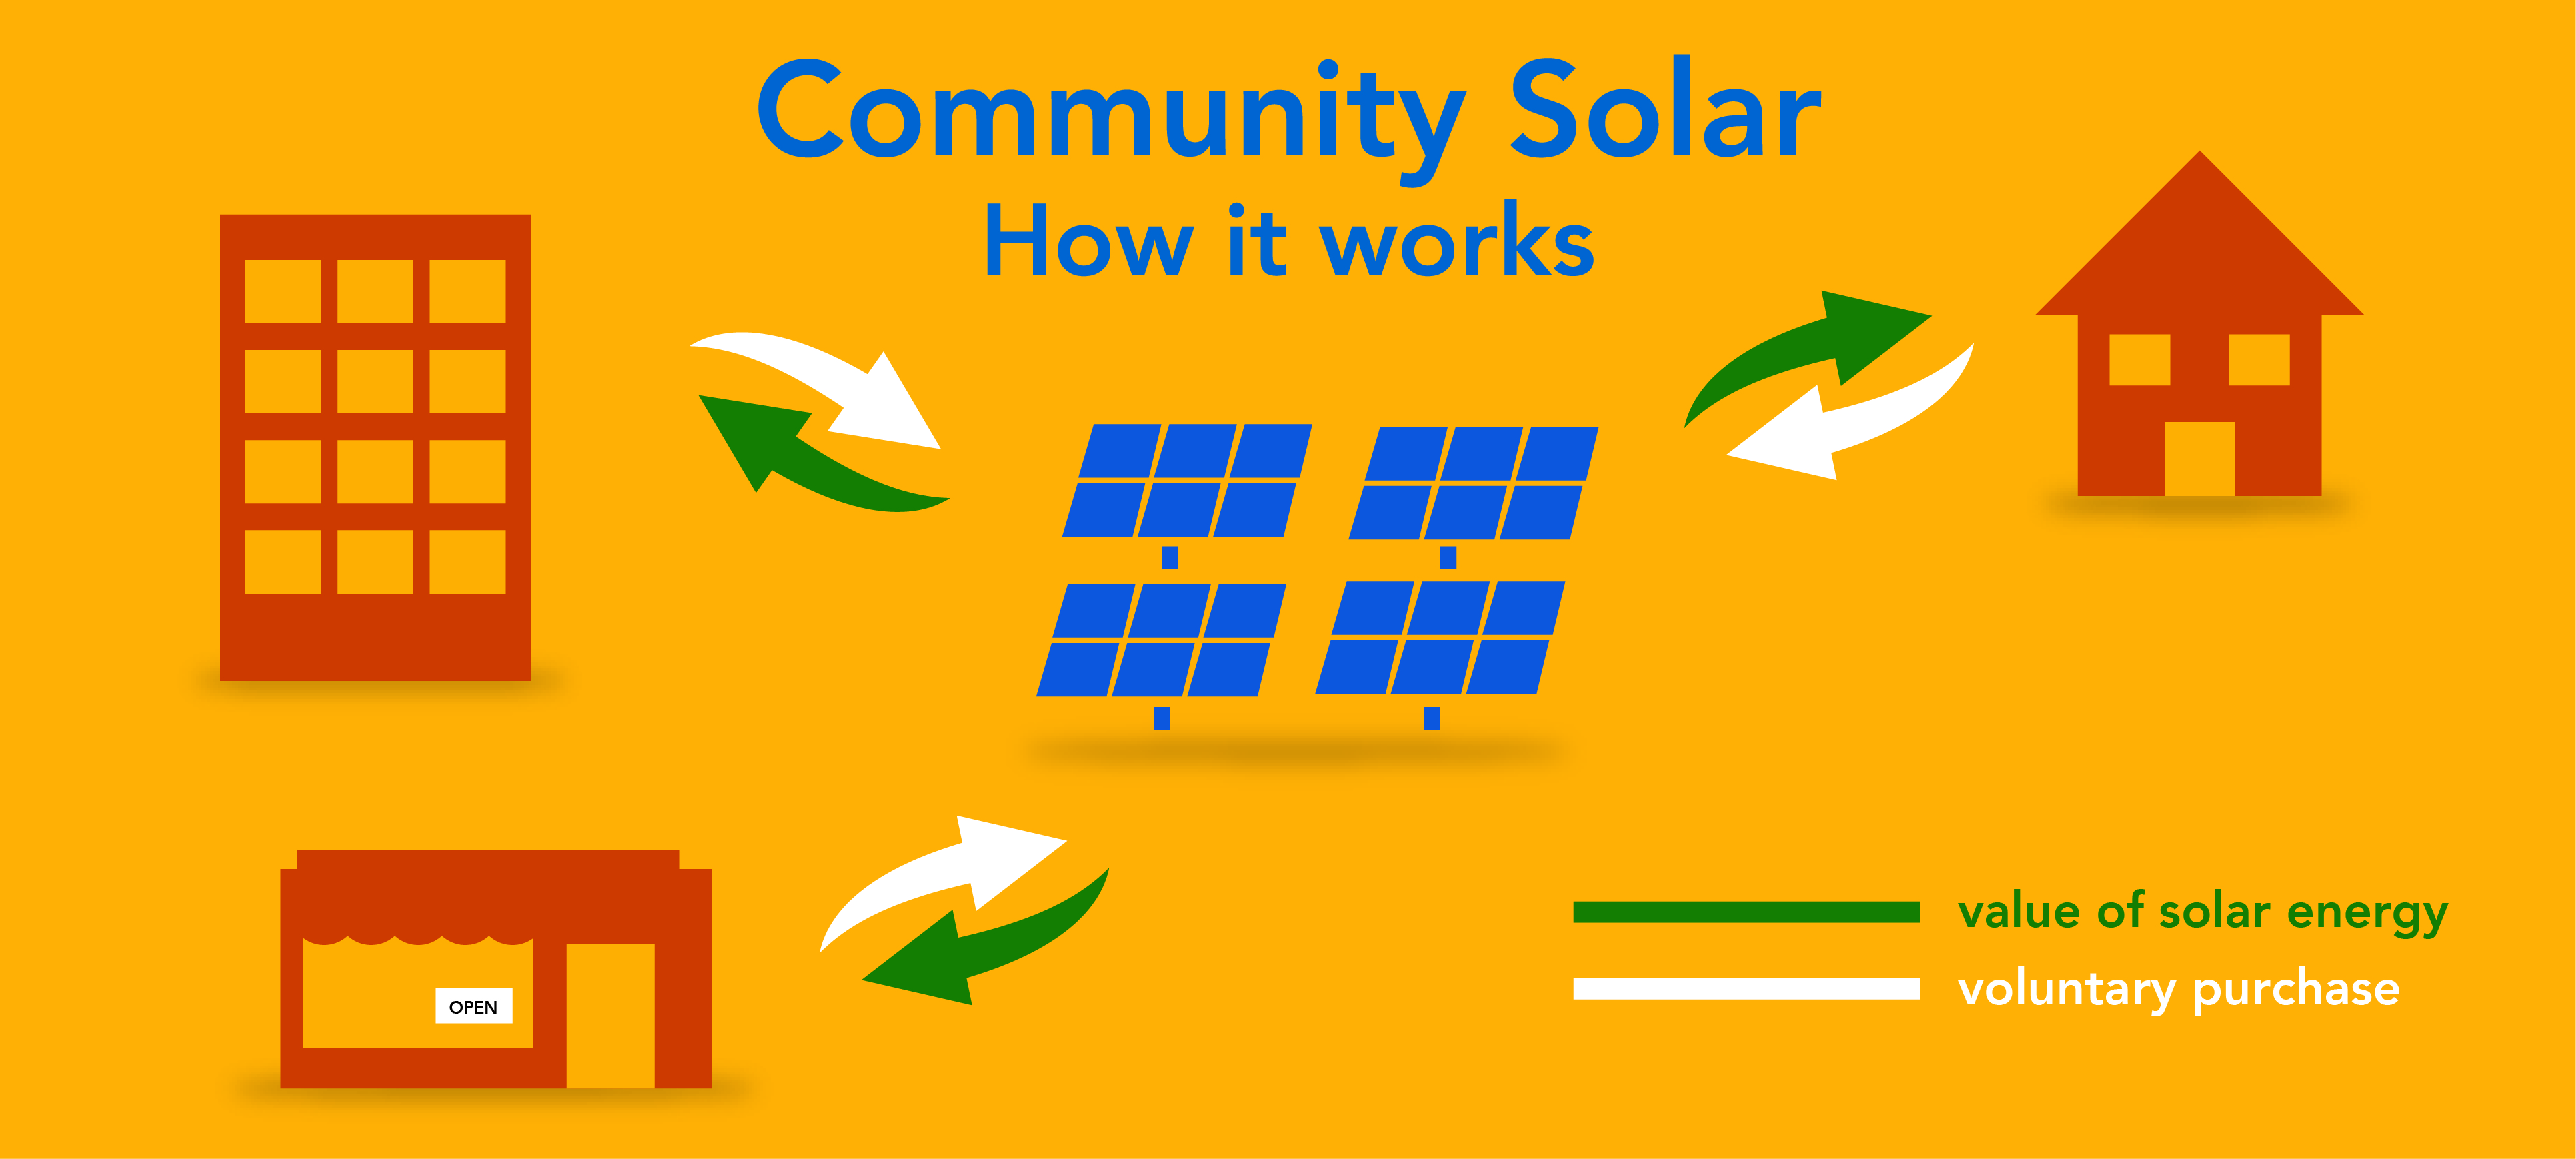 Faqs Solar Energy Future Electricity From Panels How Does It Work Home For Can Also Power Multiple Homes With Community Shared Systems Here Members Come Together To Purchase A Collective System